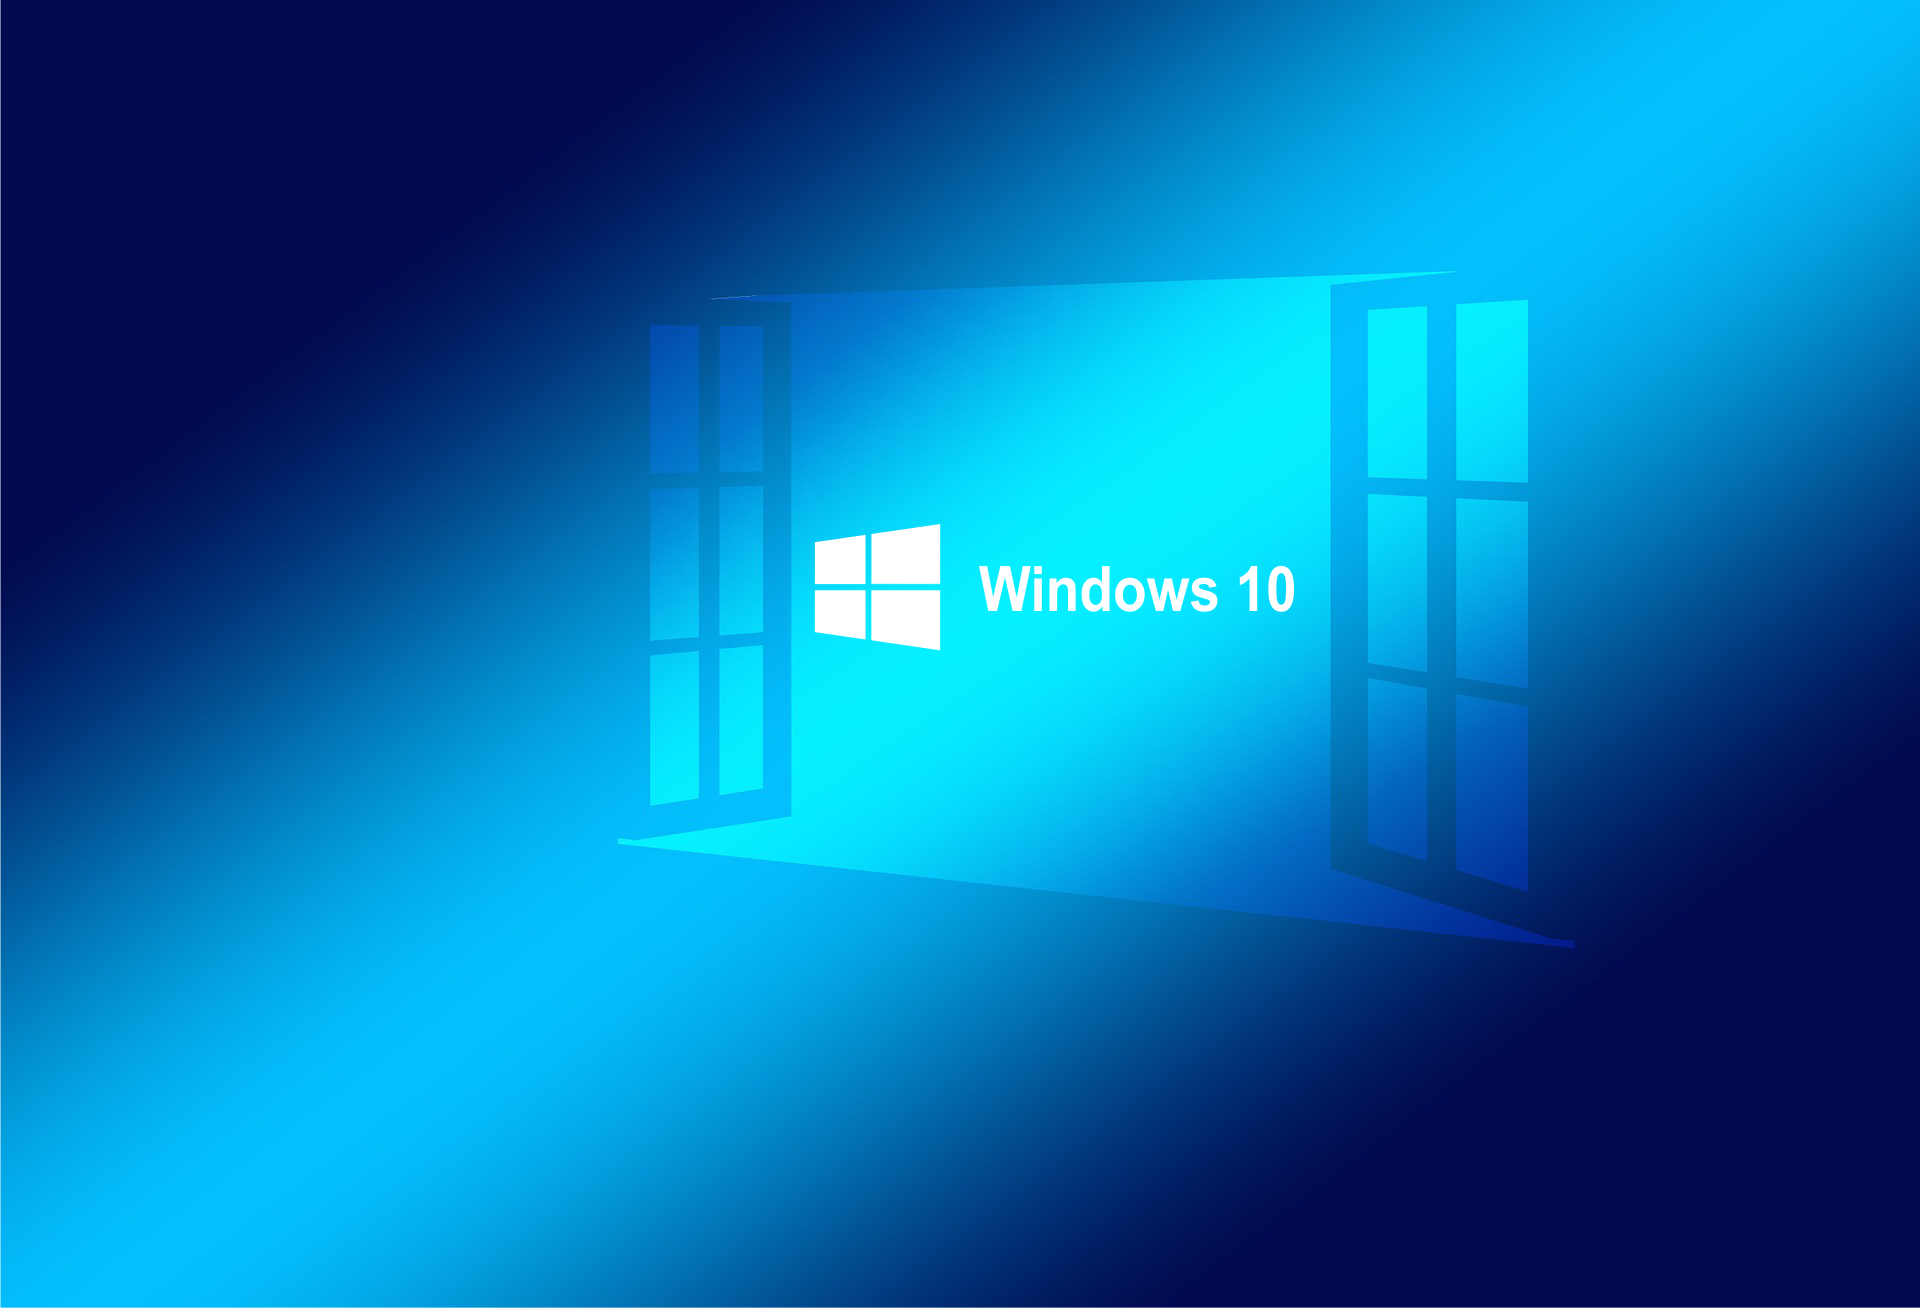 Windows 10 RDP VPS